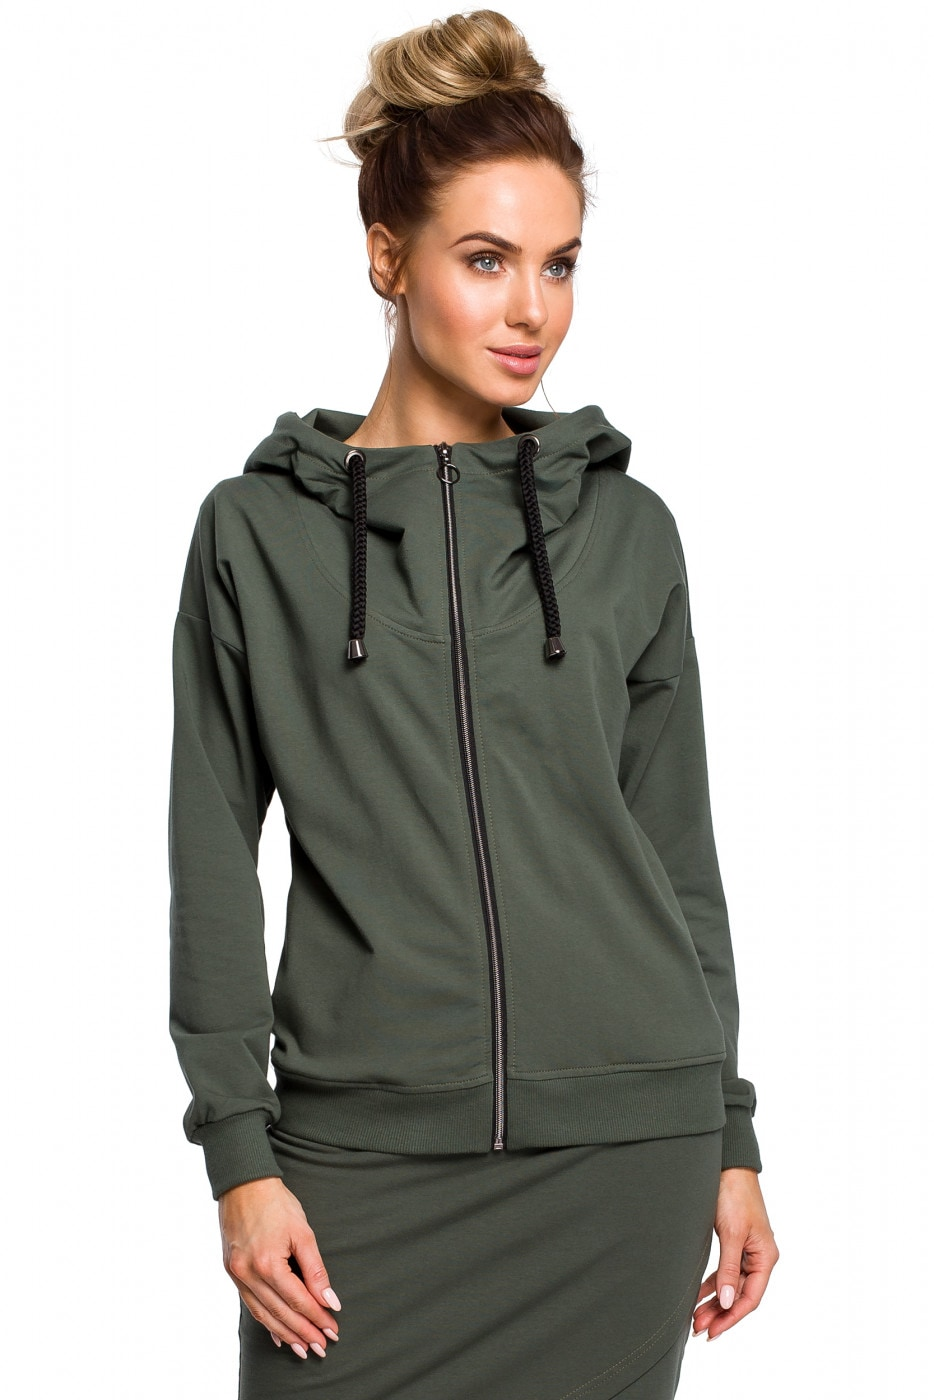 Made Of Emotion Woman's Sweatshirt M420 Military